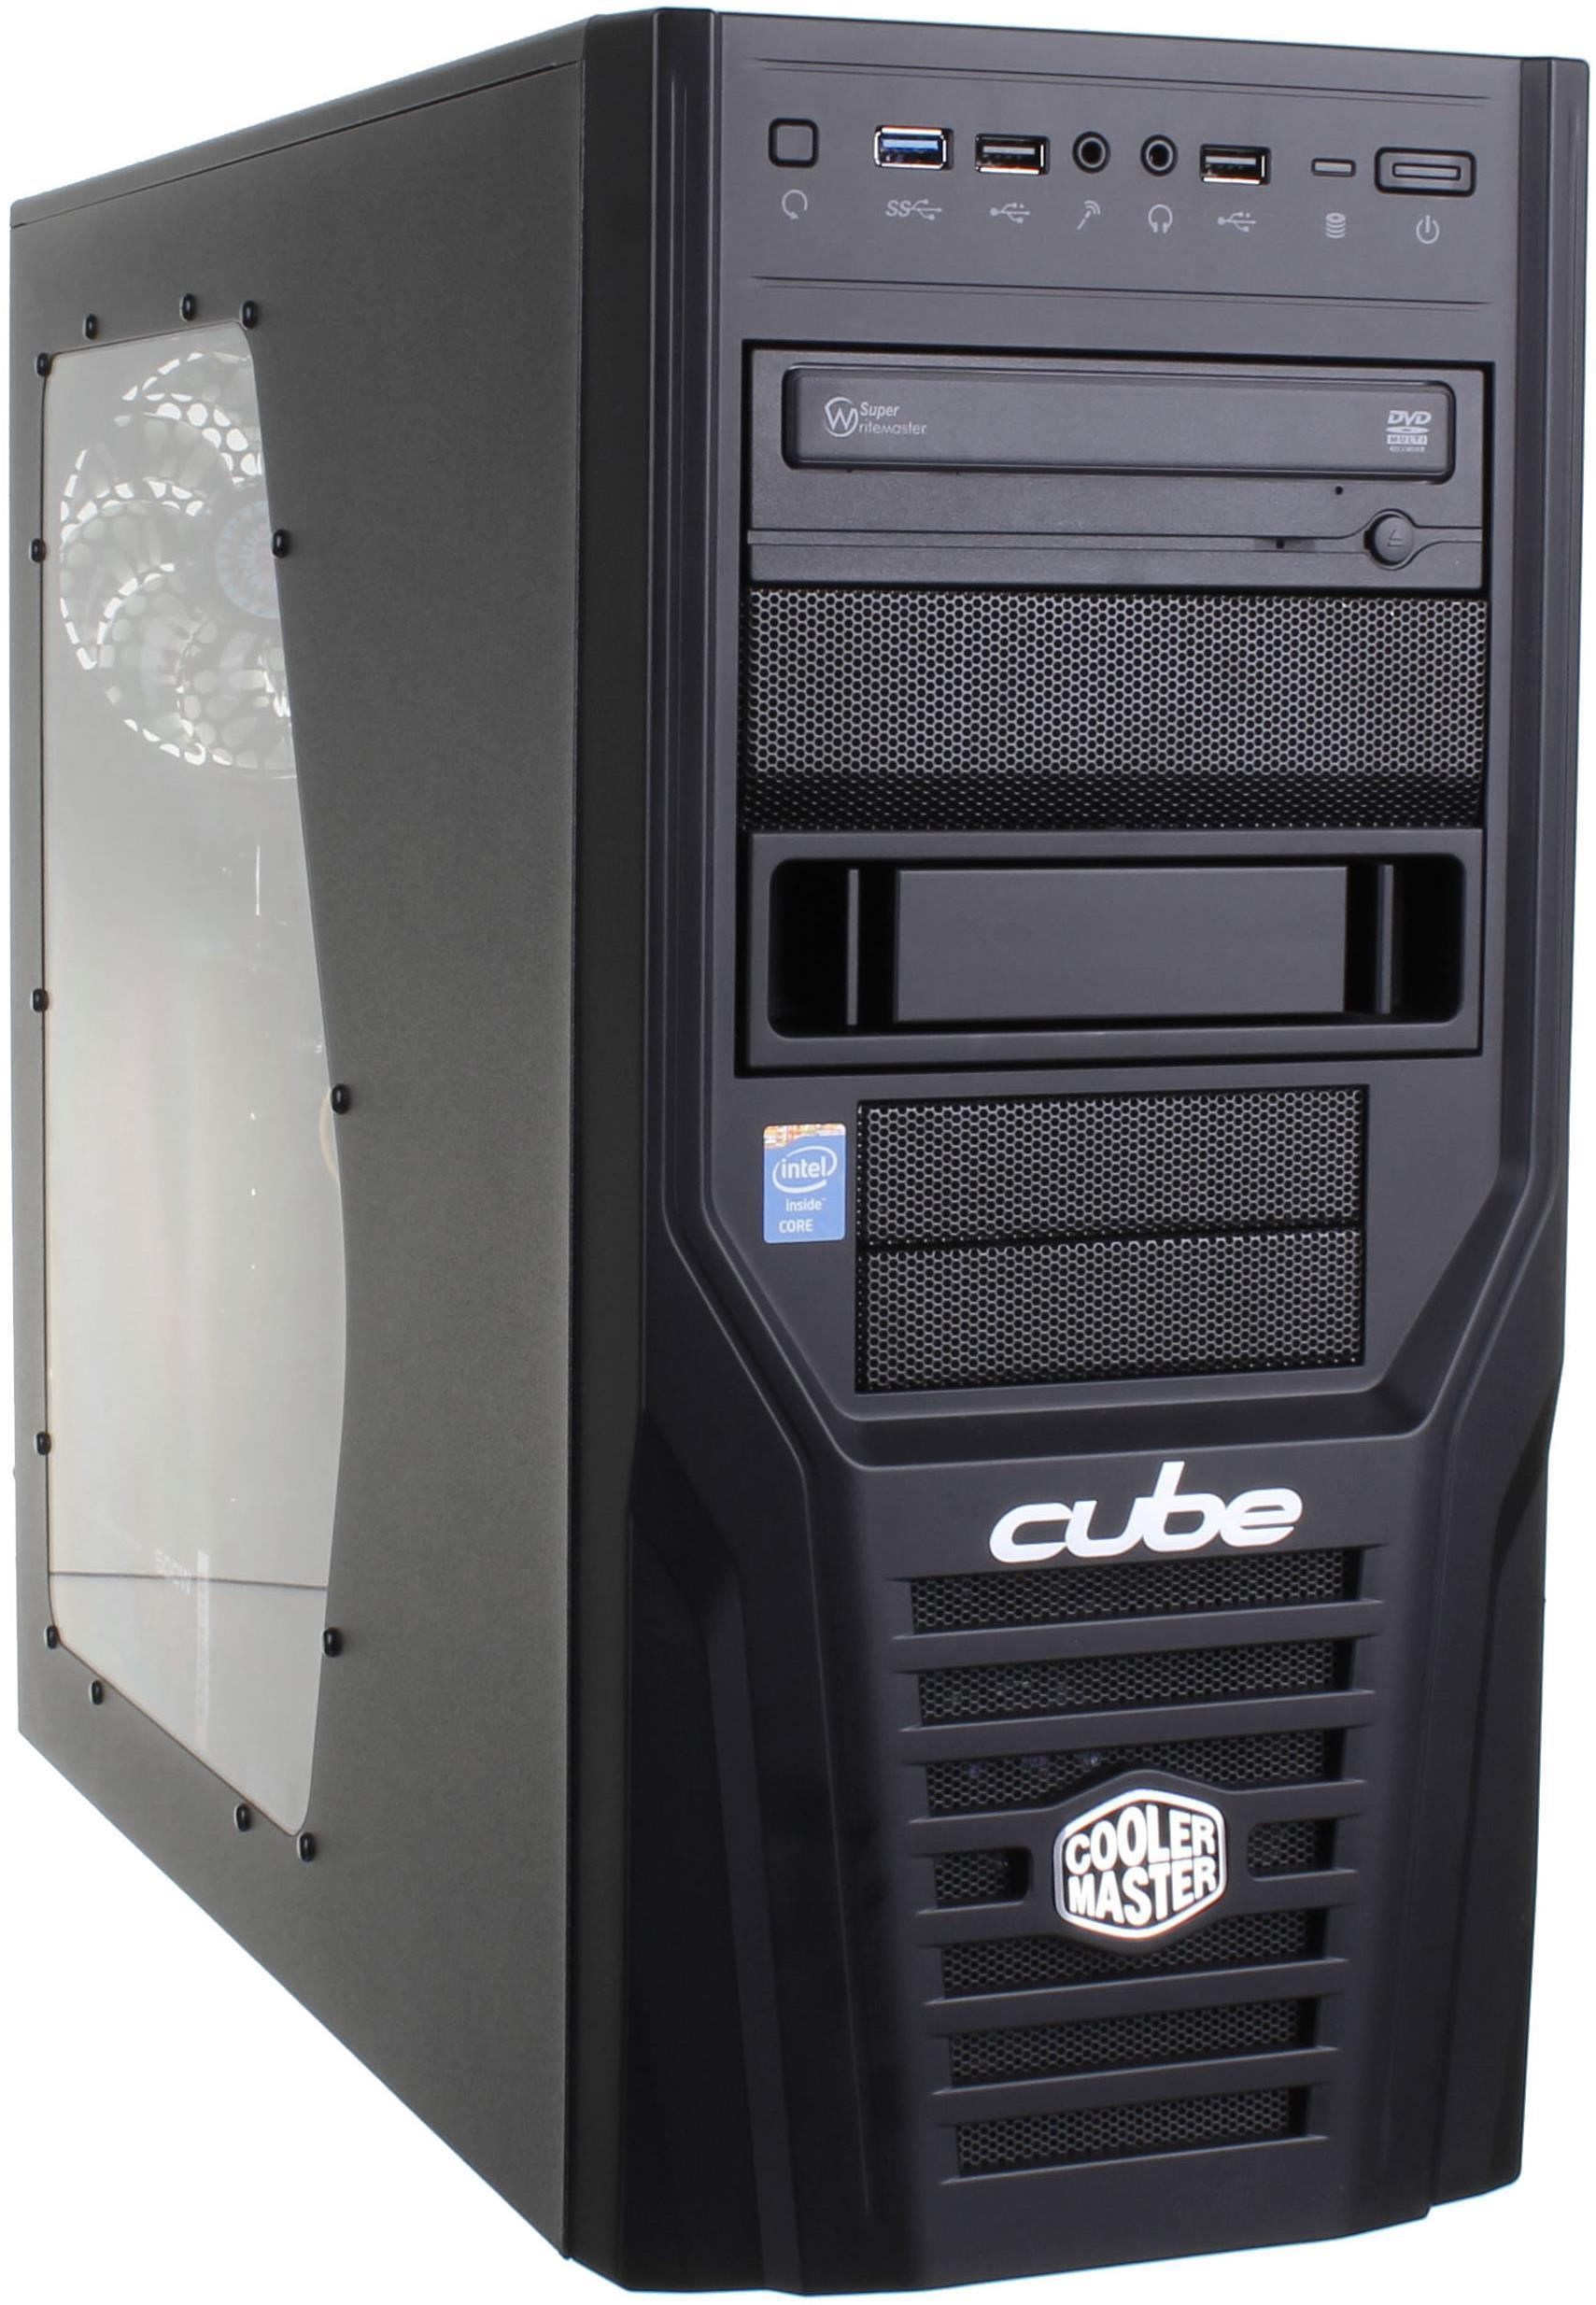 Cube Cyclone Gaming PC Core i5 with Radeon R9 270X HAWK Graphics